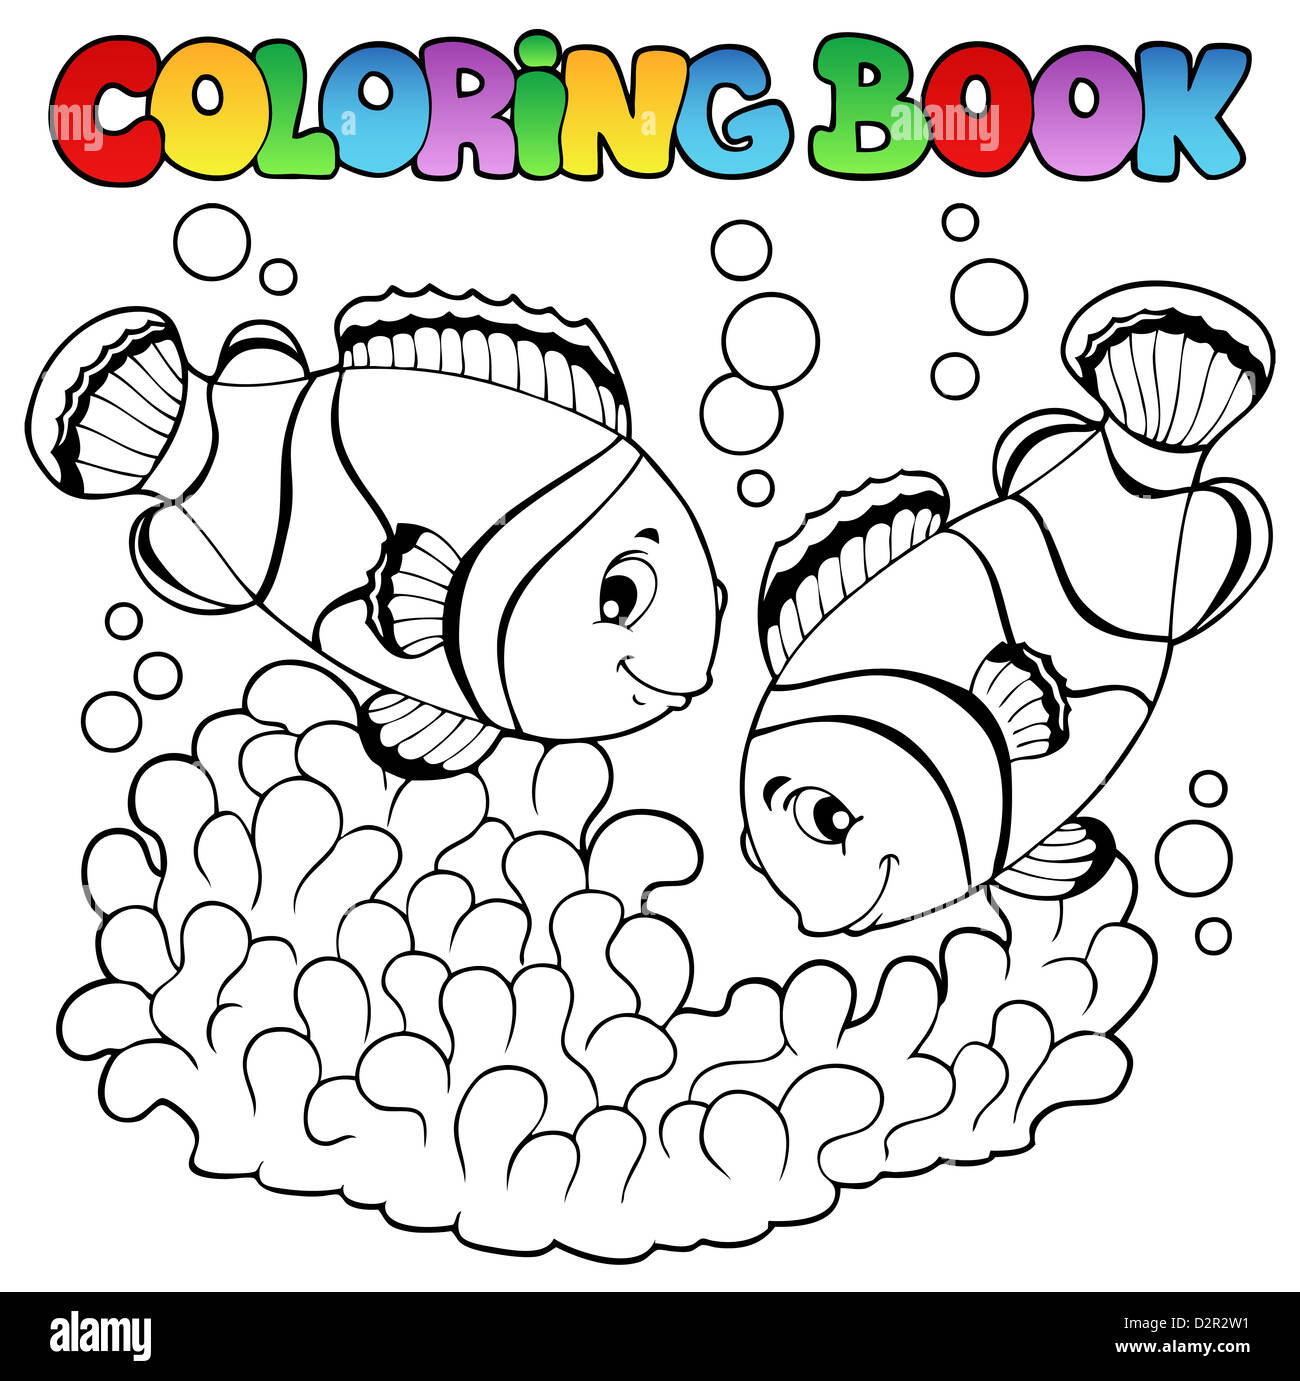 Coloring book two cute clown fishes - picture illustration. - Stock Image